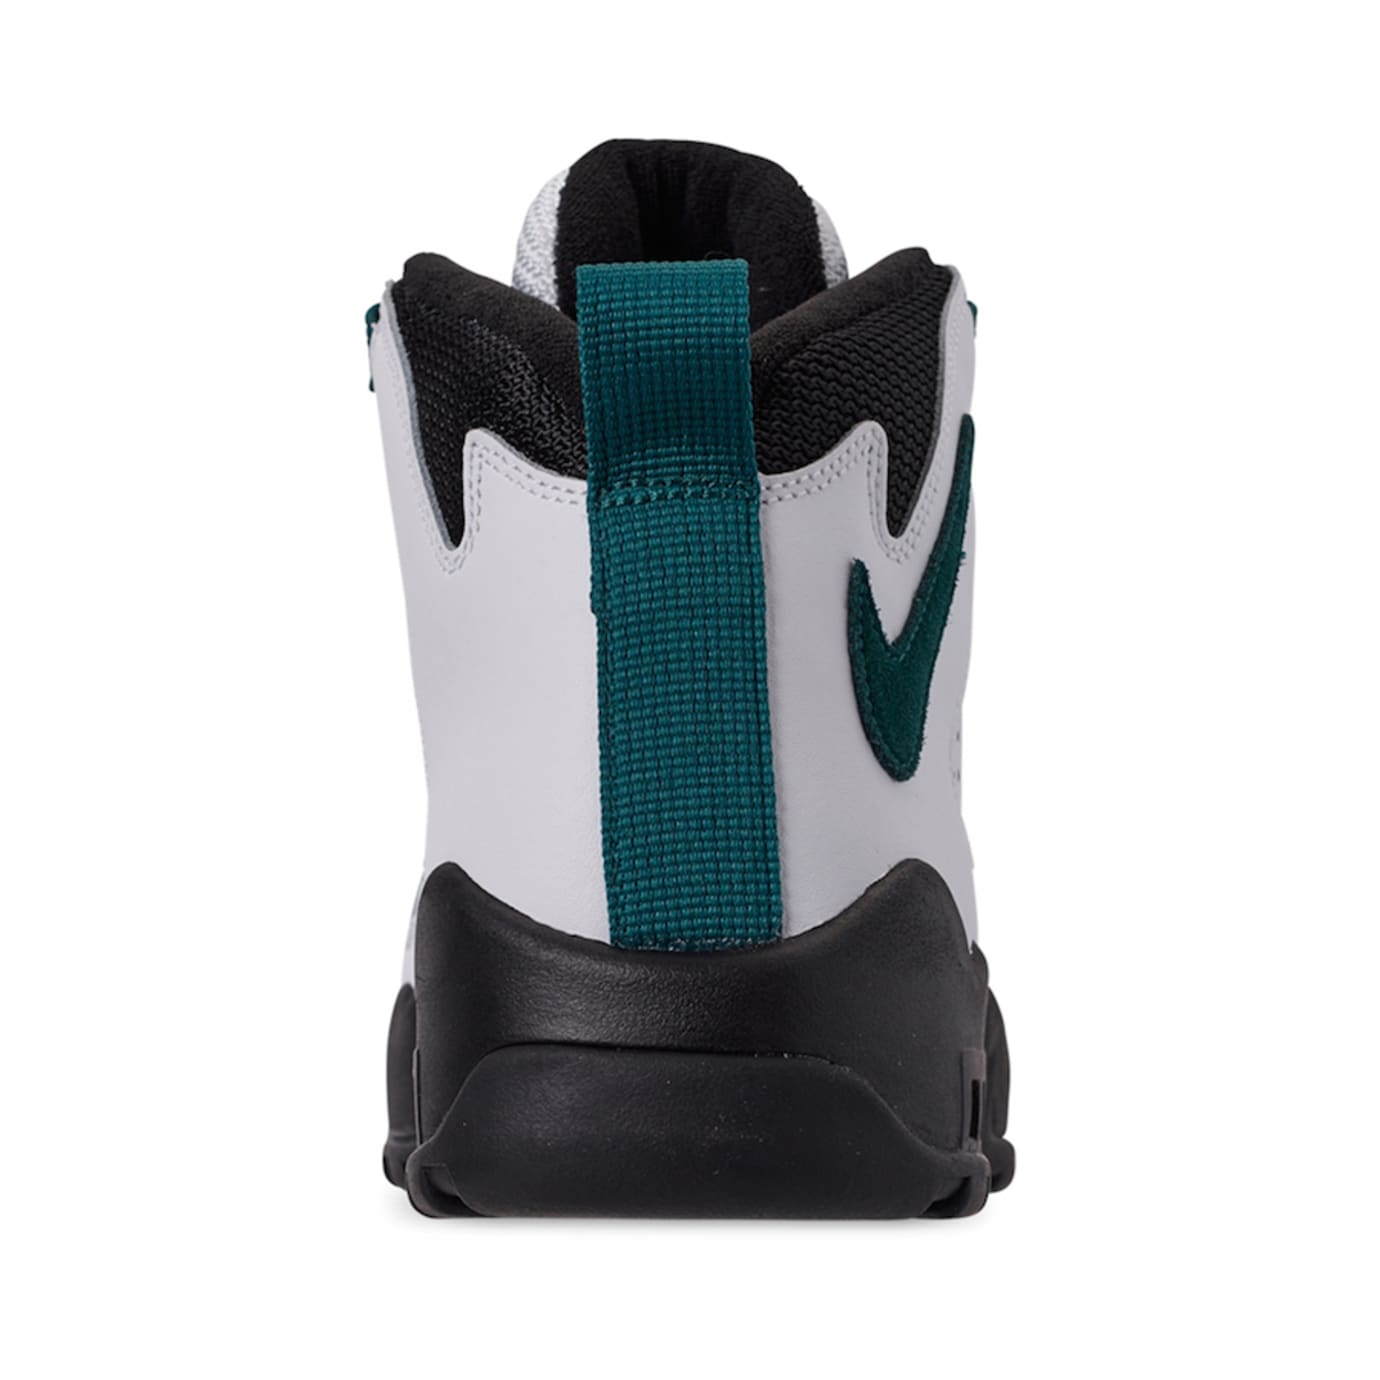 best value f1d4f bdea5 Image via Finish Line Nike Air Darwin  White Teal Black  AJ9710-100 (Heel)